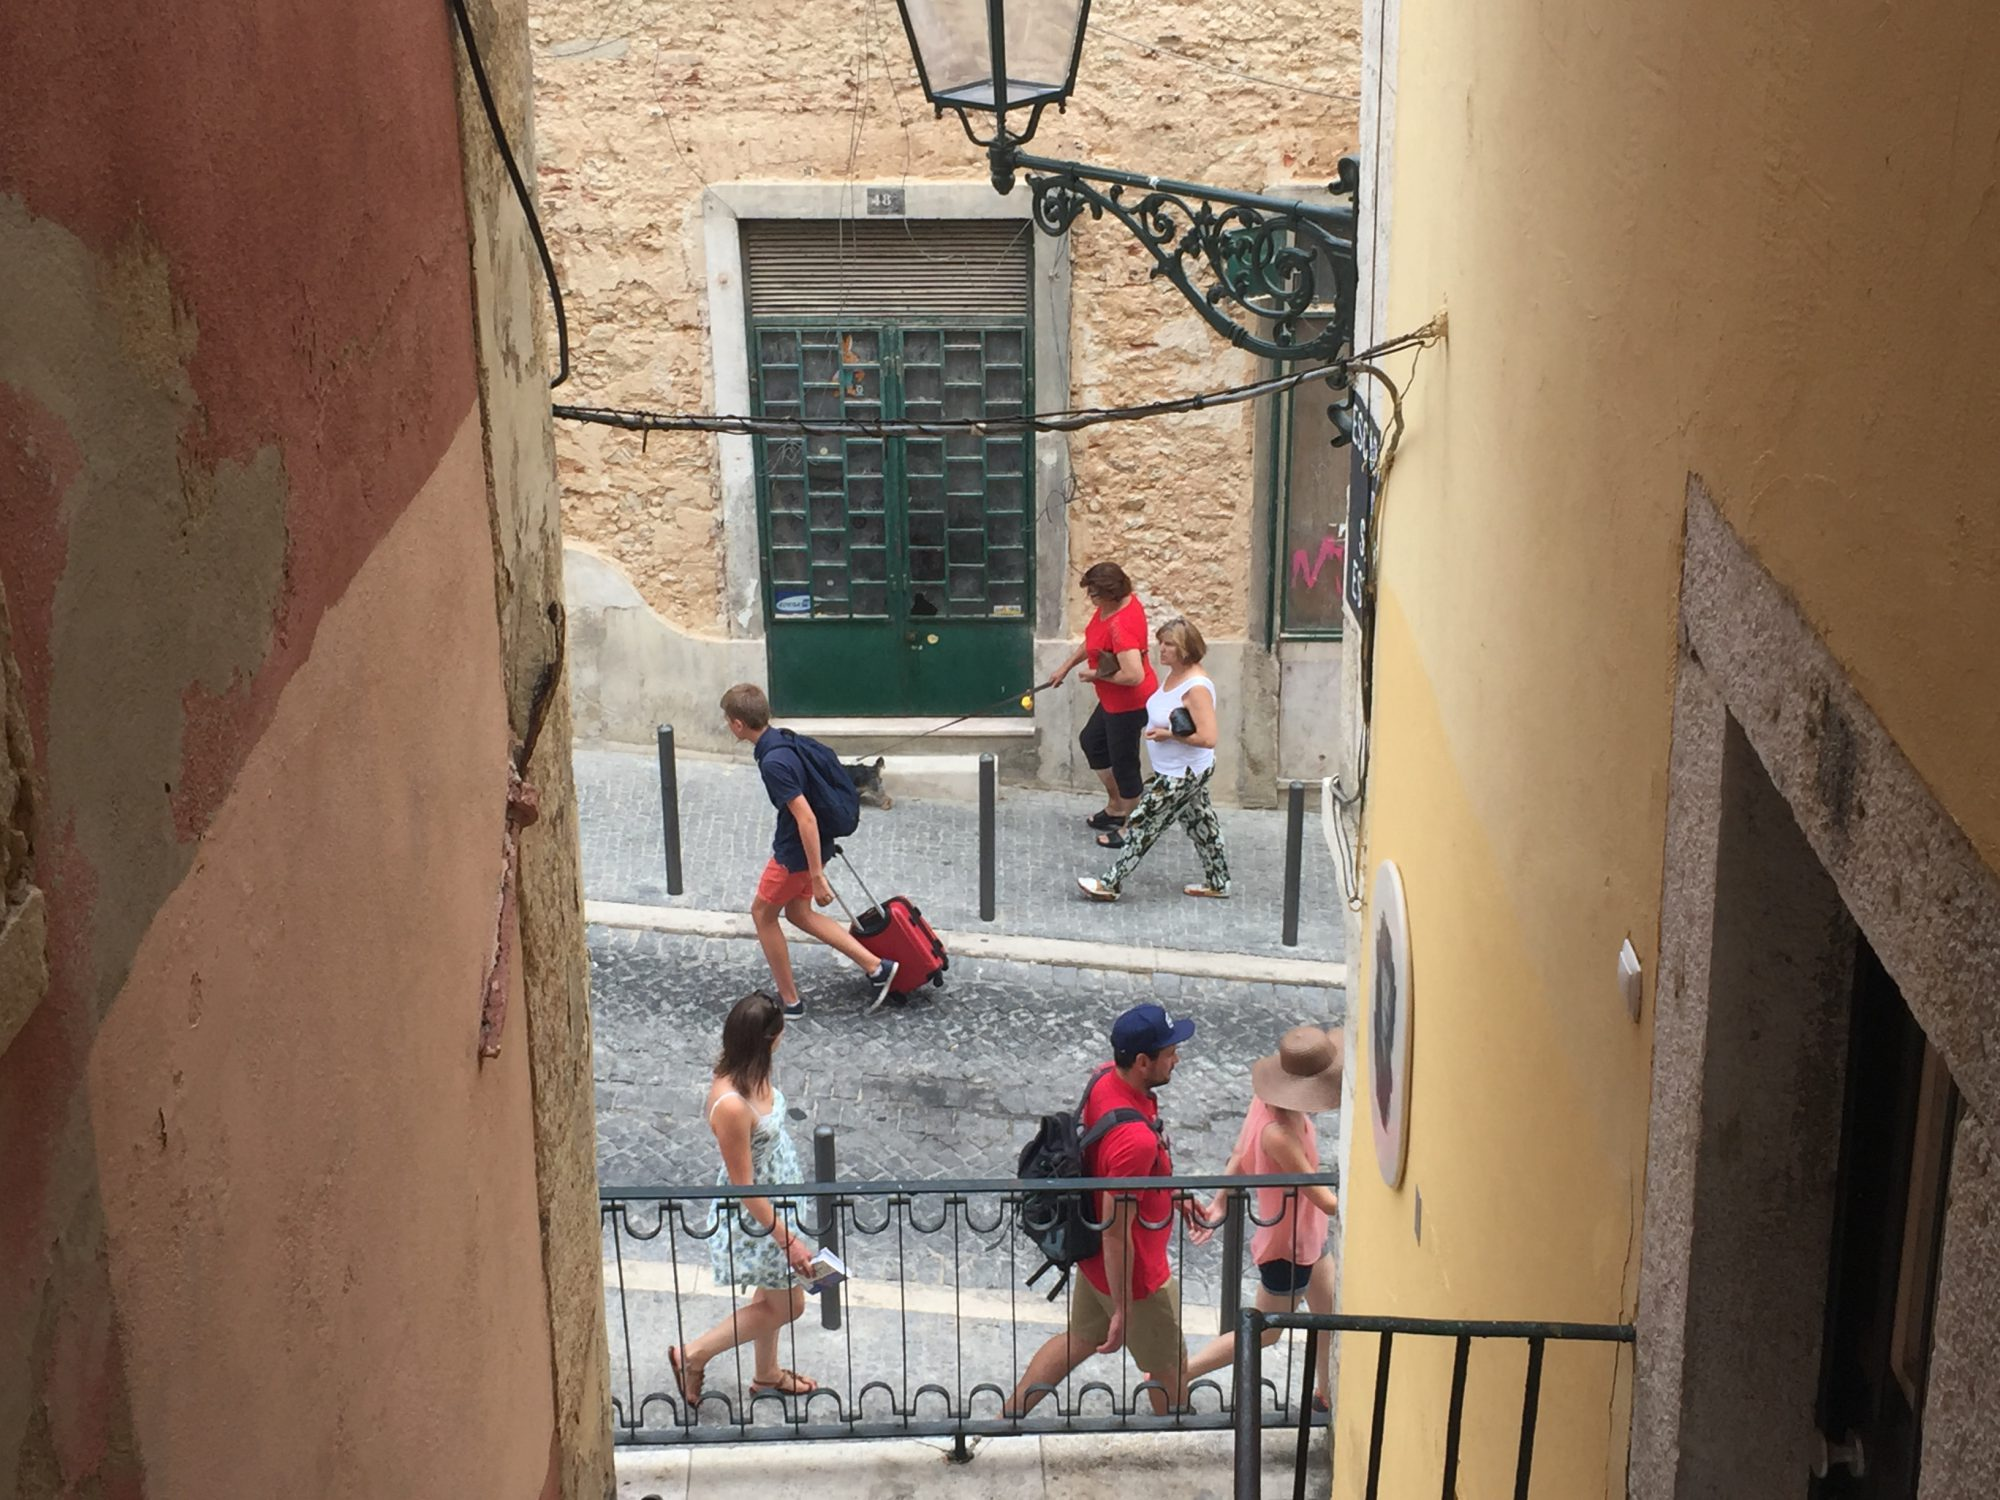 Cobblestones, Trolleys and Flipflops: Daily life in Alfama